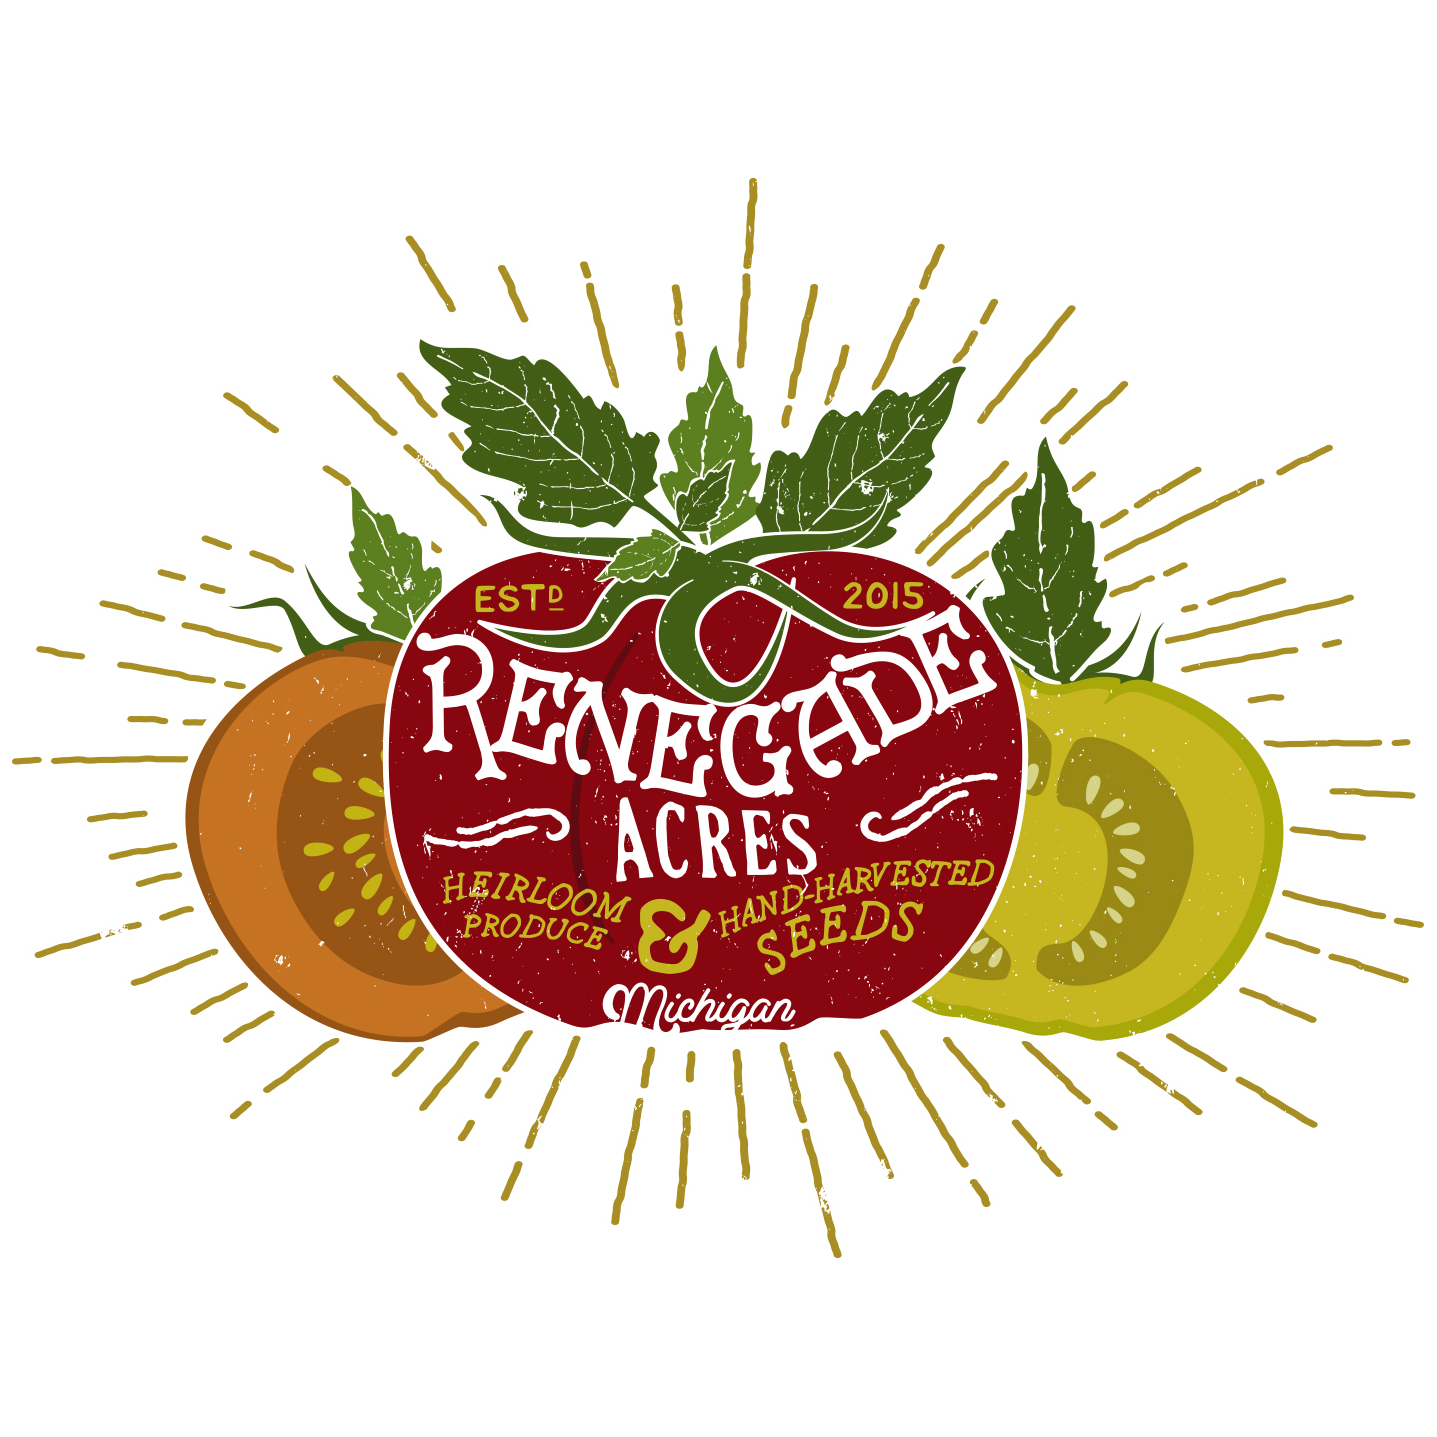 Renegade Acres